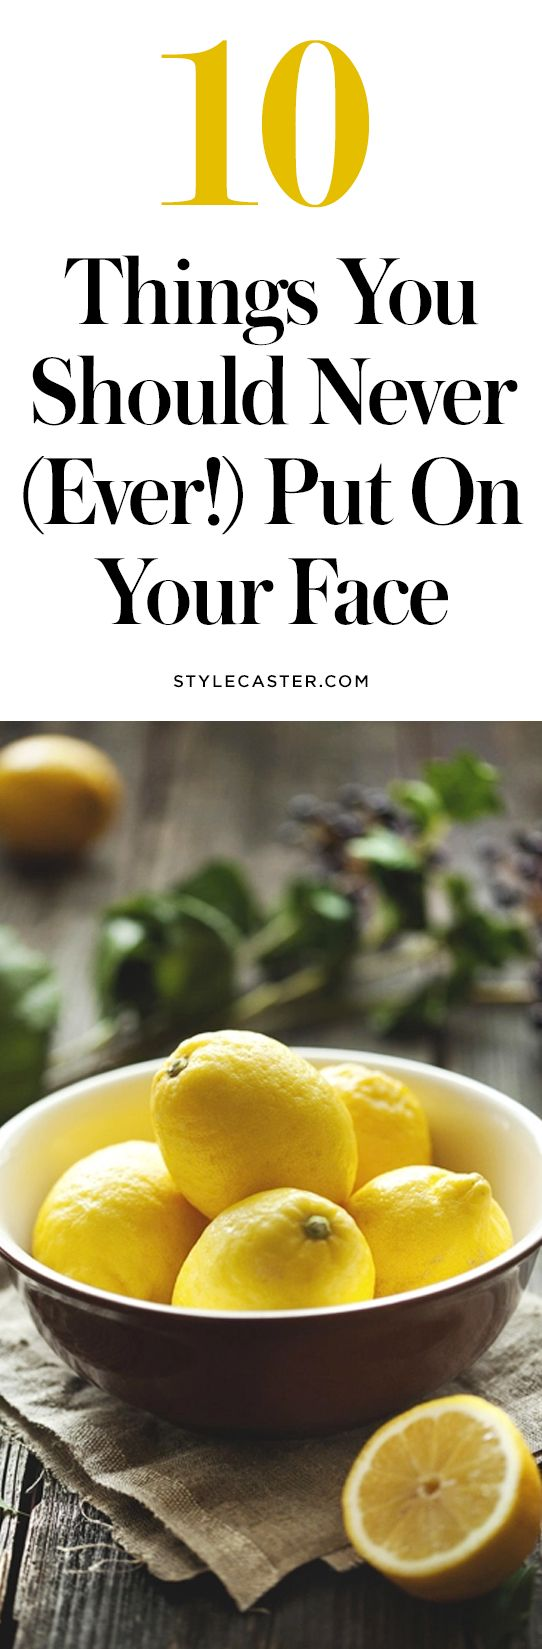 bad diy skin care 9 DIY Skin Care Ingredients That are Bad for Your Skin